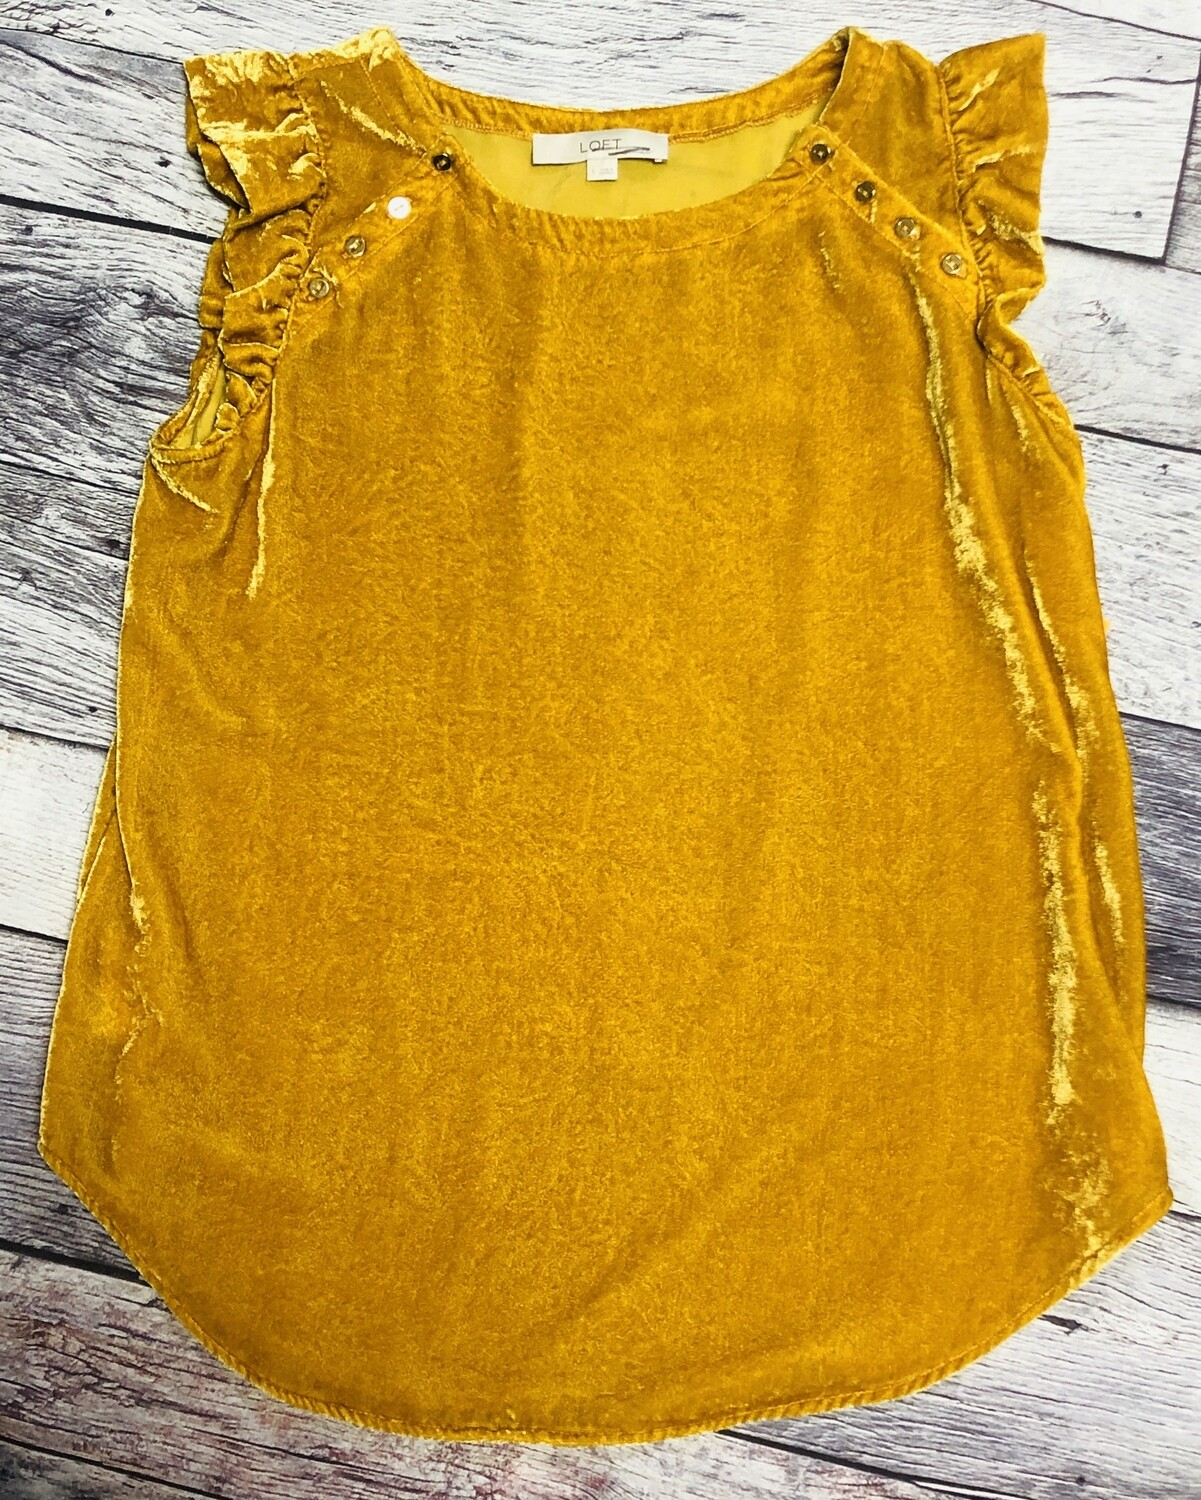 Ann Taylor LOFT Mustard Yellow Crushed Velvet Top size Small